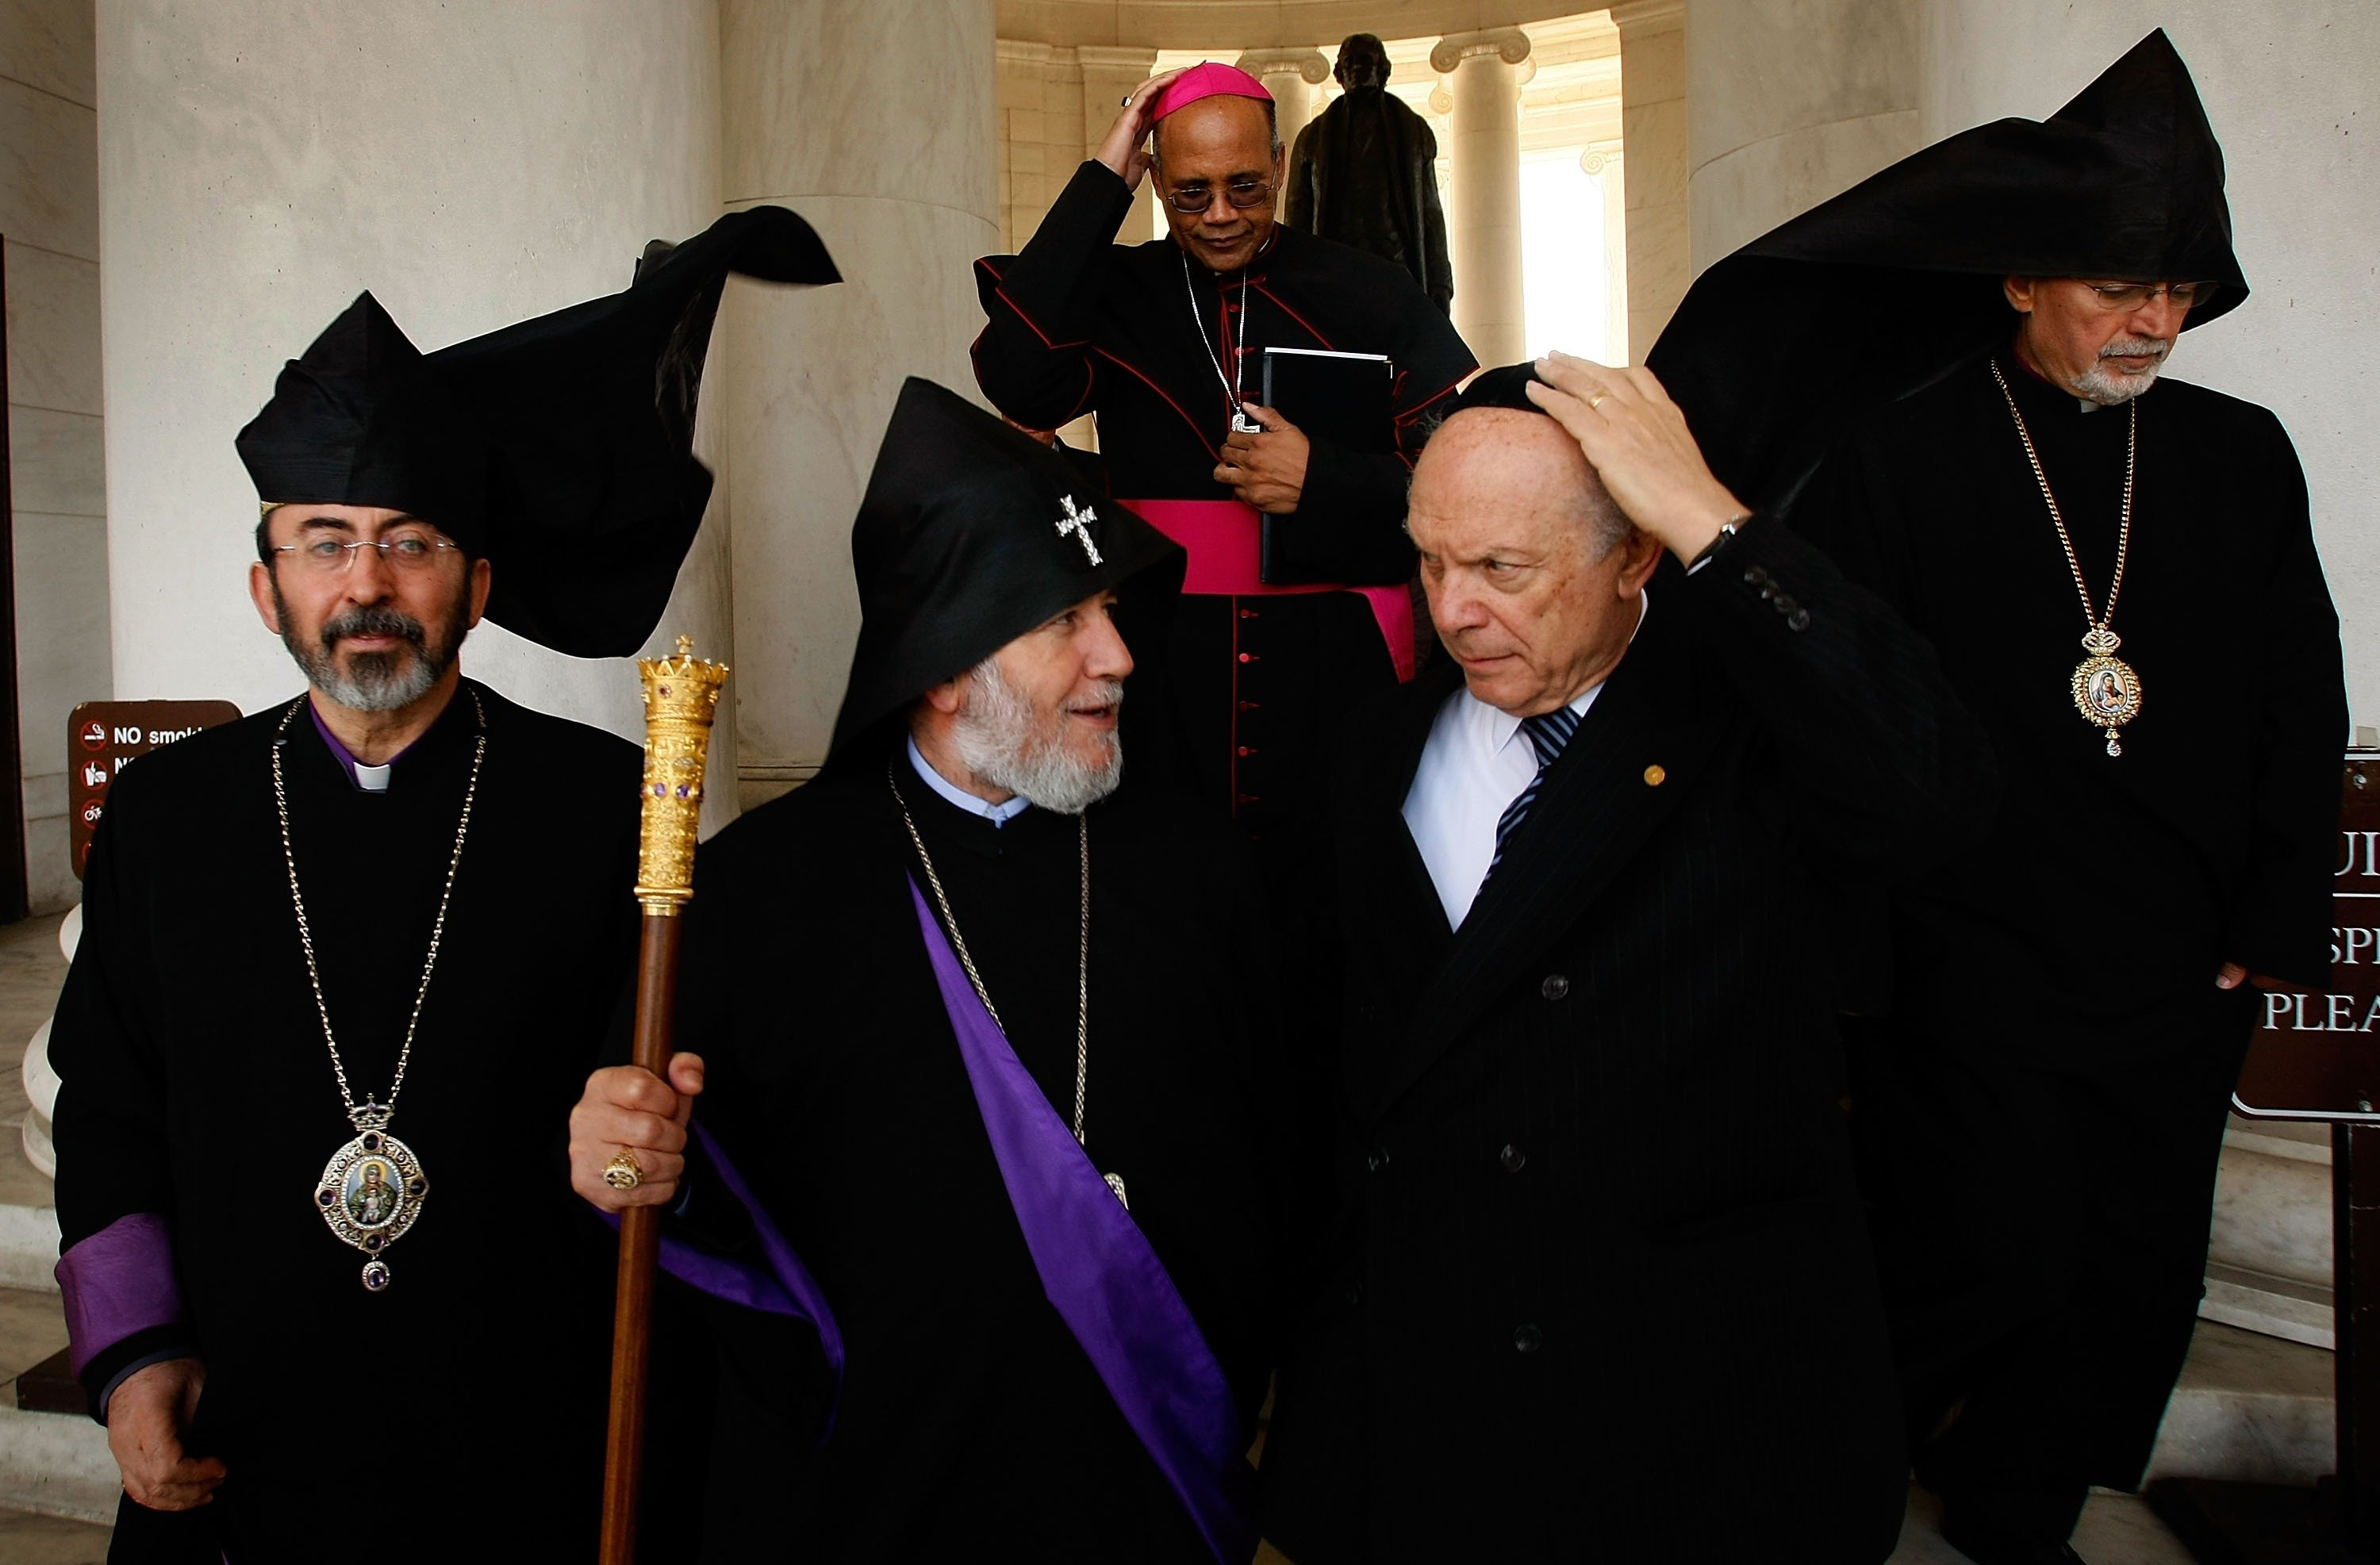 WASHINGTON - OCTOBER 11: Catholicos Karekin II (2nd L), Supreme Patriarch and Catholicos of All Armenians meets with religious leaders of other faiths during a brief tour of the Jefferson Memorial October 11, 2007 in Washington, DC. During the final day of his tour to the United States, Catholicos Karekin II delivered a speech in front of the memorial on religious freedoms. Also pictured are Rabbi David Saperstein (2nd R) of the Religious Action Center and Bishop Martin Holley of the Archdiocese of Washington (C). (Photo by Win McNamee/Getty Images)